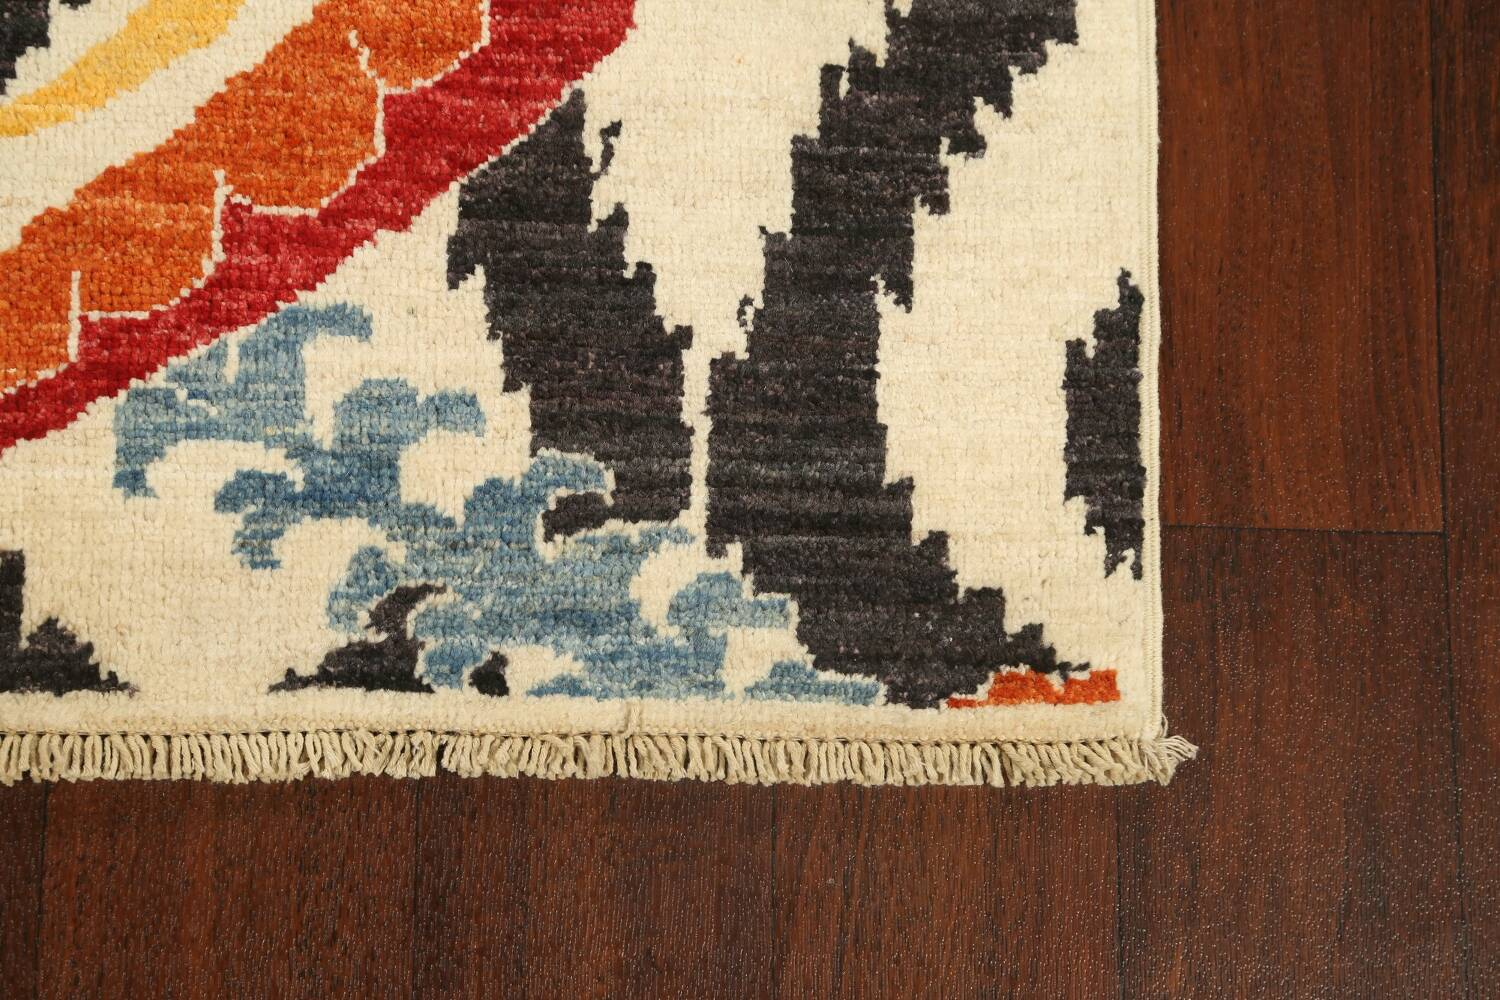 All-Over Floral IKats Oriental Runner Rug 3x8 image 5